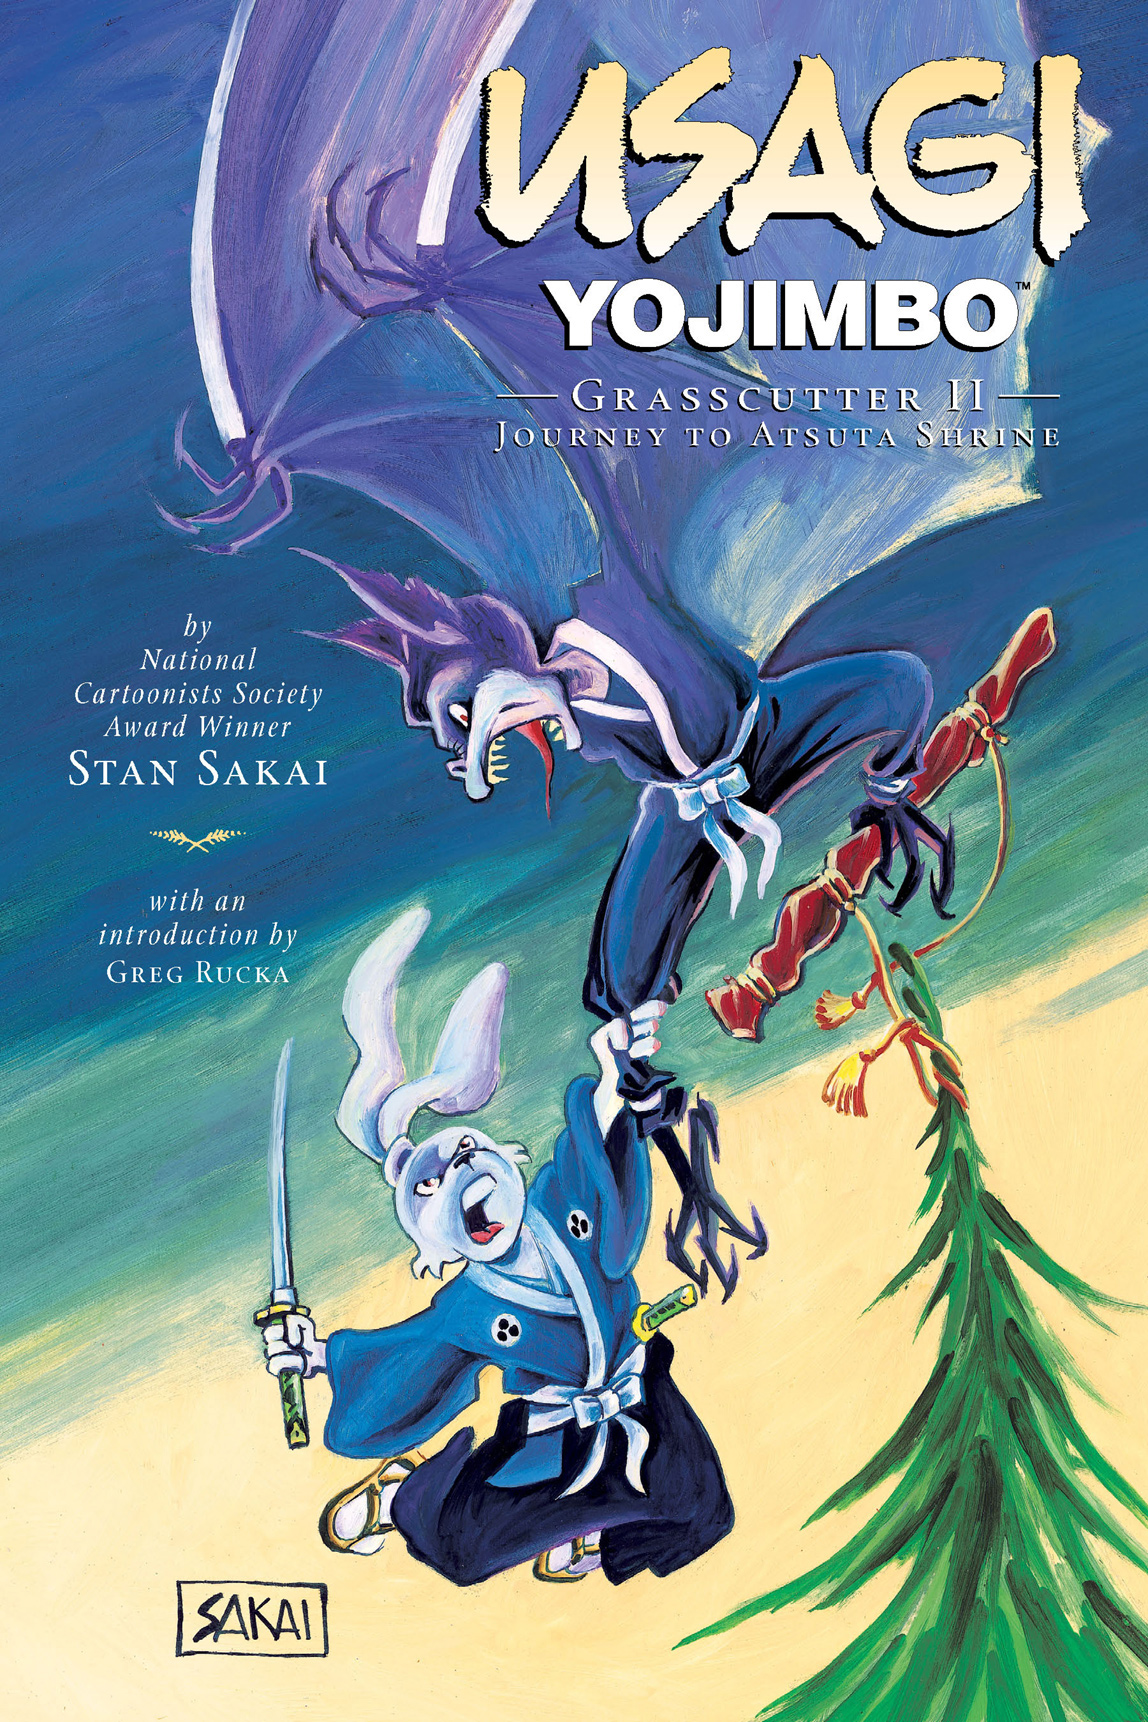 Usagi Yojimbo Vol. 15: Grasscutter II -- Journey to Atsuta Shrine